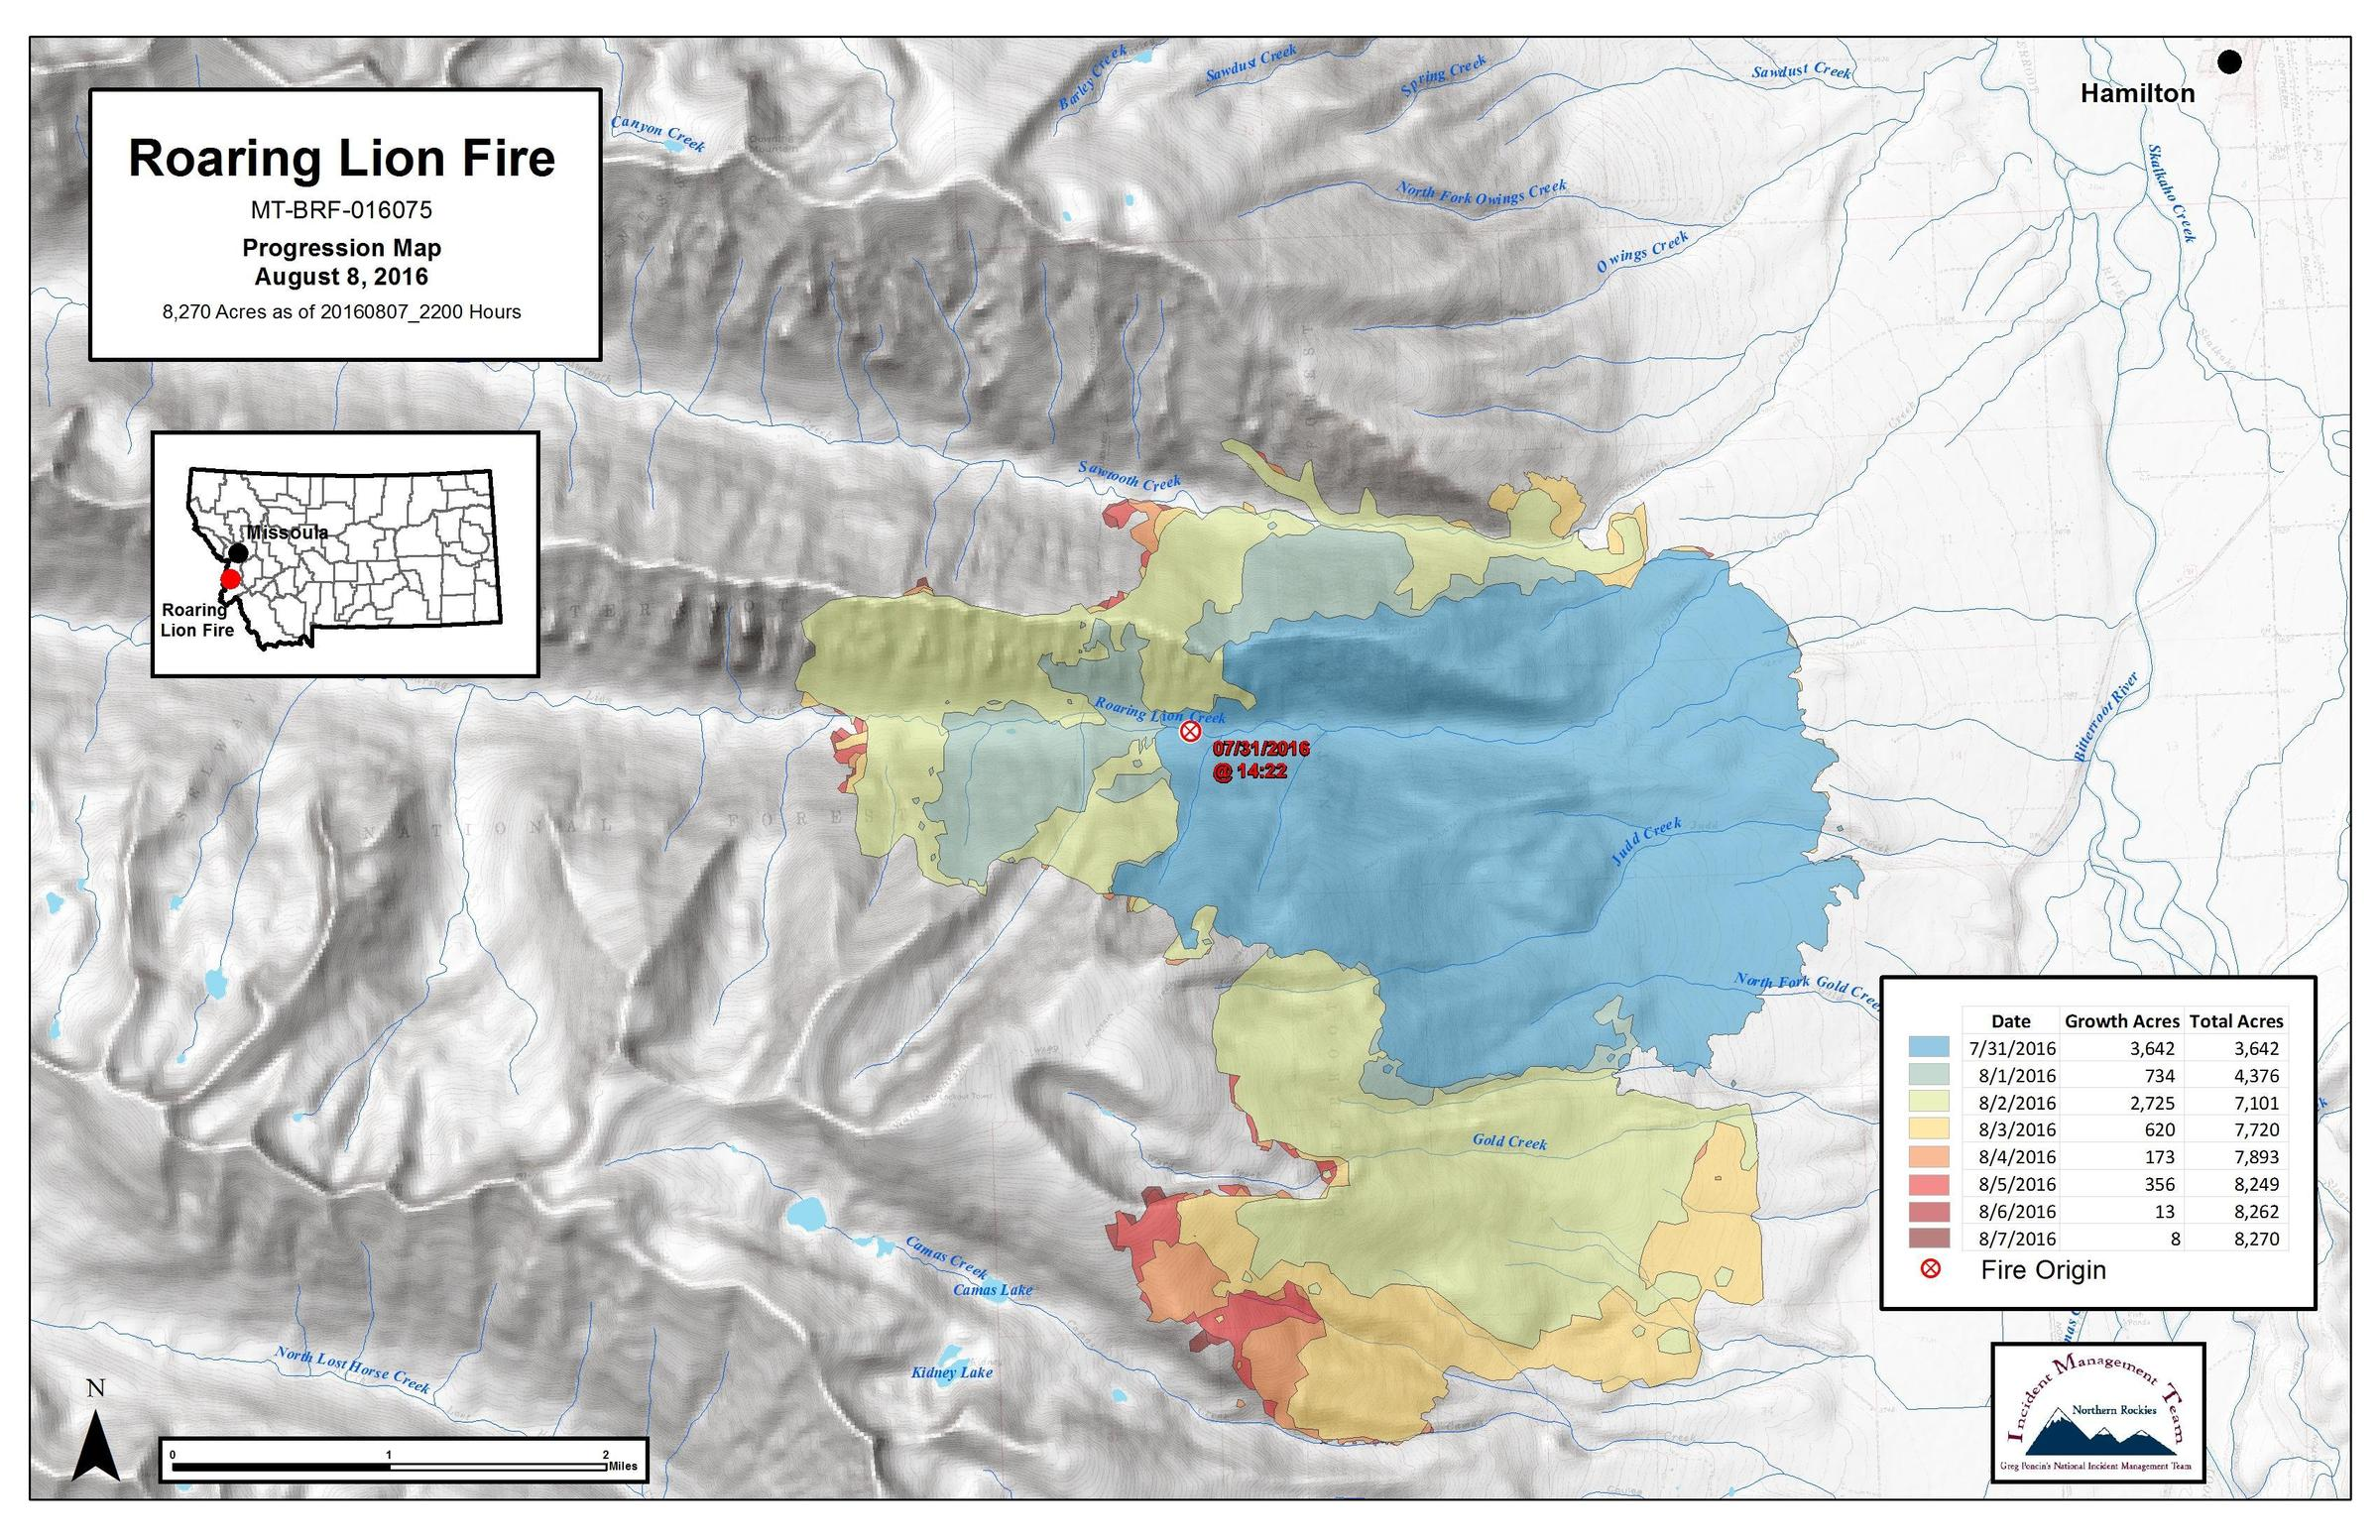 Montana Fire Map 2016.Montana Wildfire Roundup For August 9 2016 Mtpr